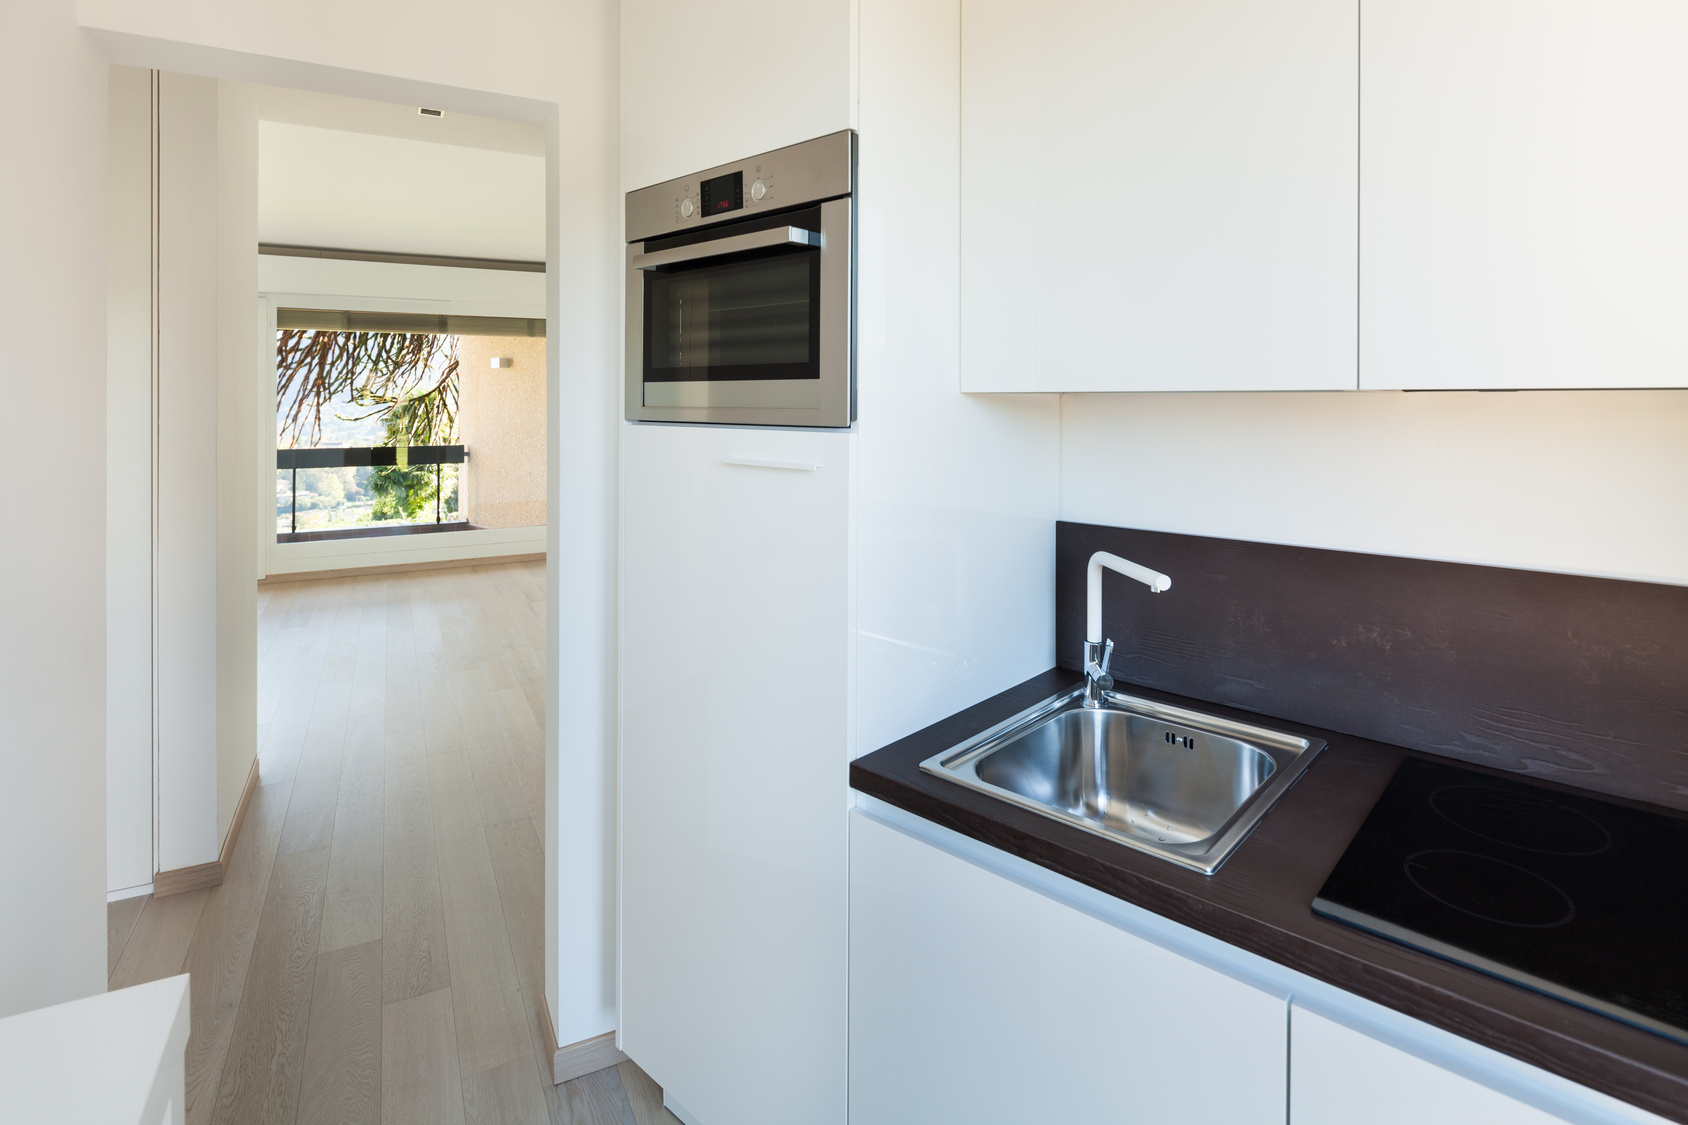 Full Size of Interiors Building, Modern Apartment, Kitchen View Küche Single Küche